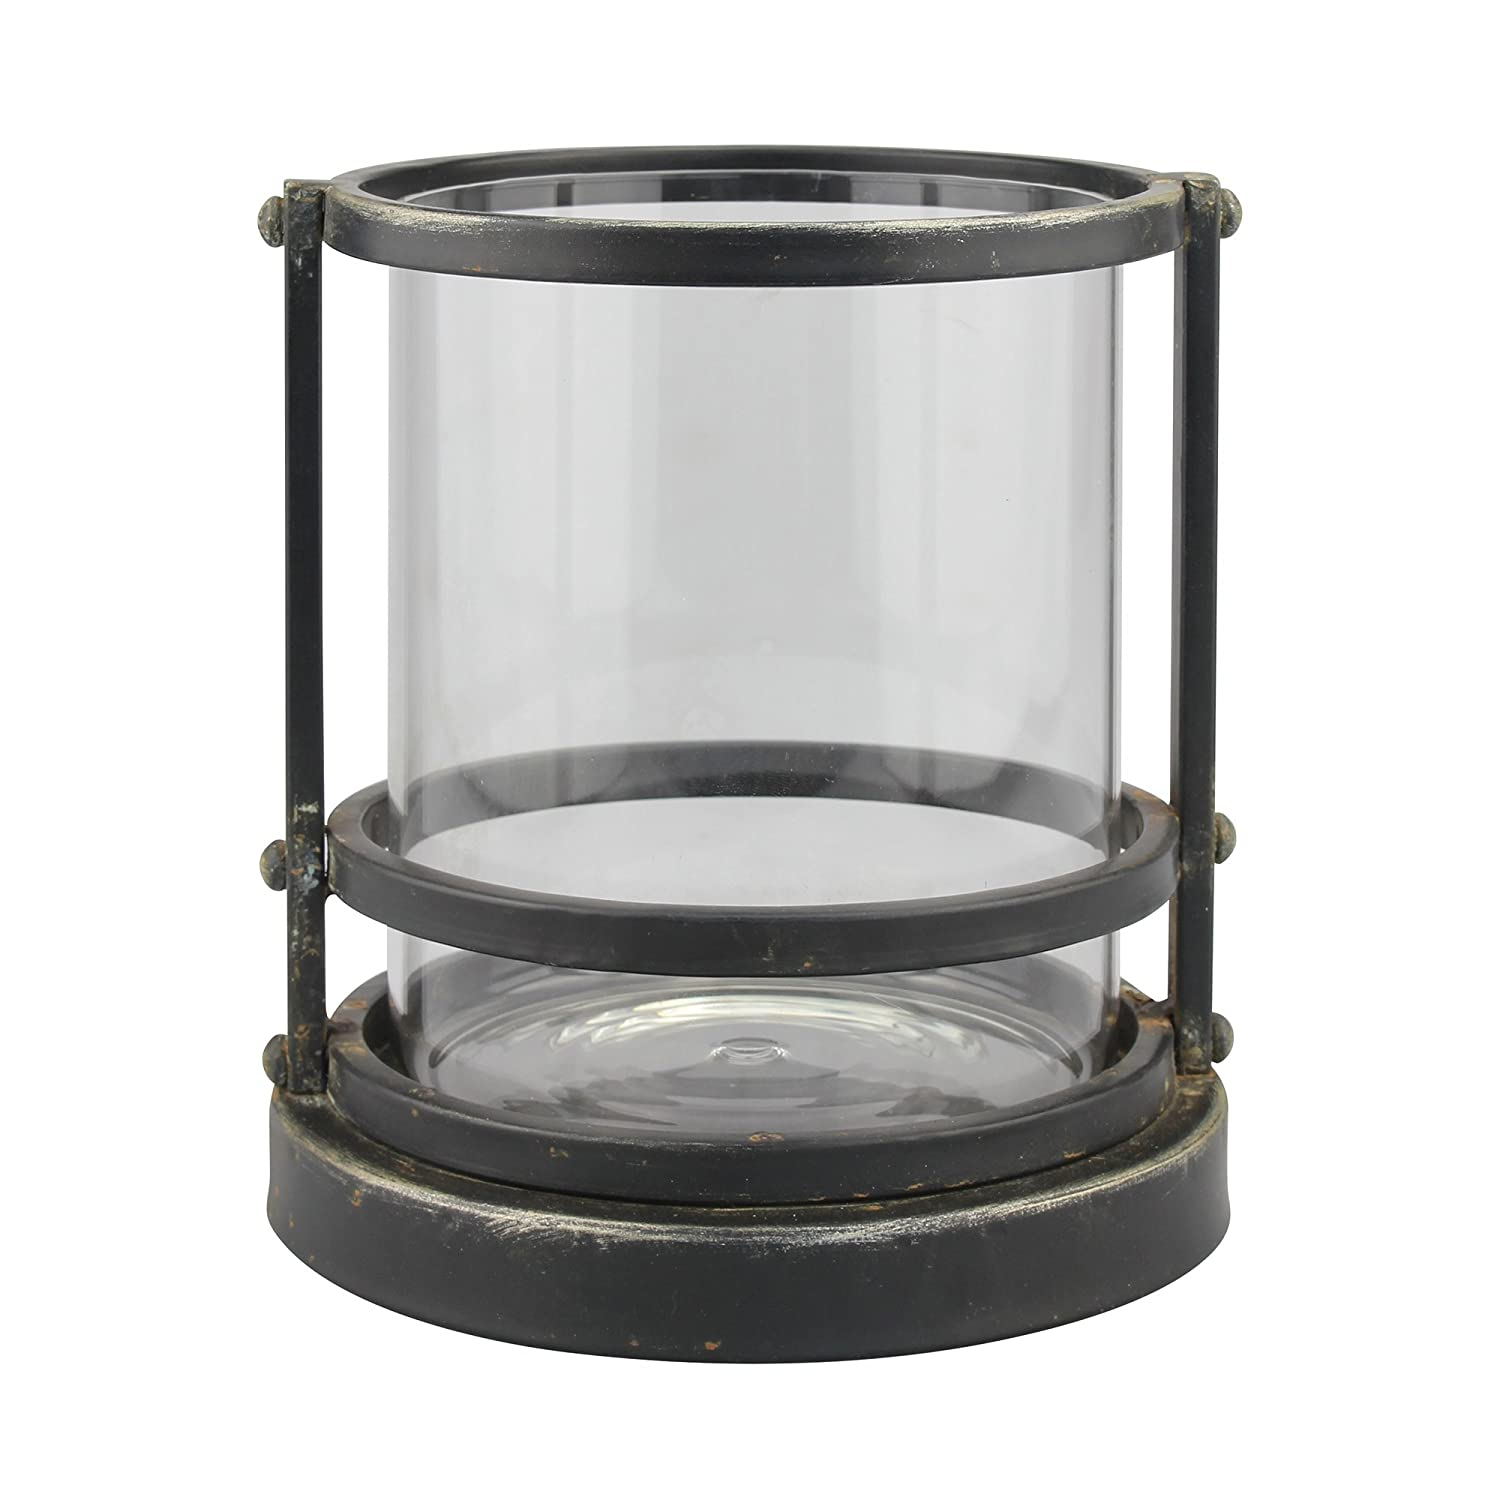 Stonebriar Industrial Black Metal Cage Pillar Candle Holder with Removable Glass Hurricane, Decorative Rustic Design for Wedding Decorations, Parties, or Everyday Home Decor, Small CKK Home Décor SB-6053A